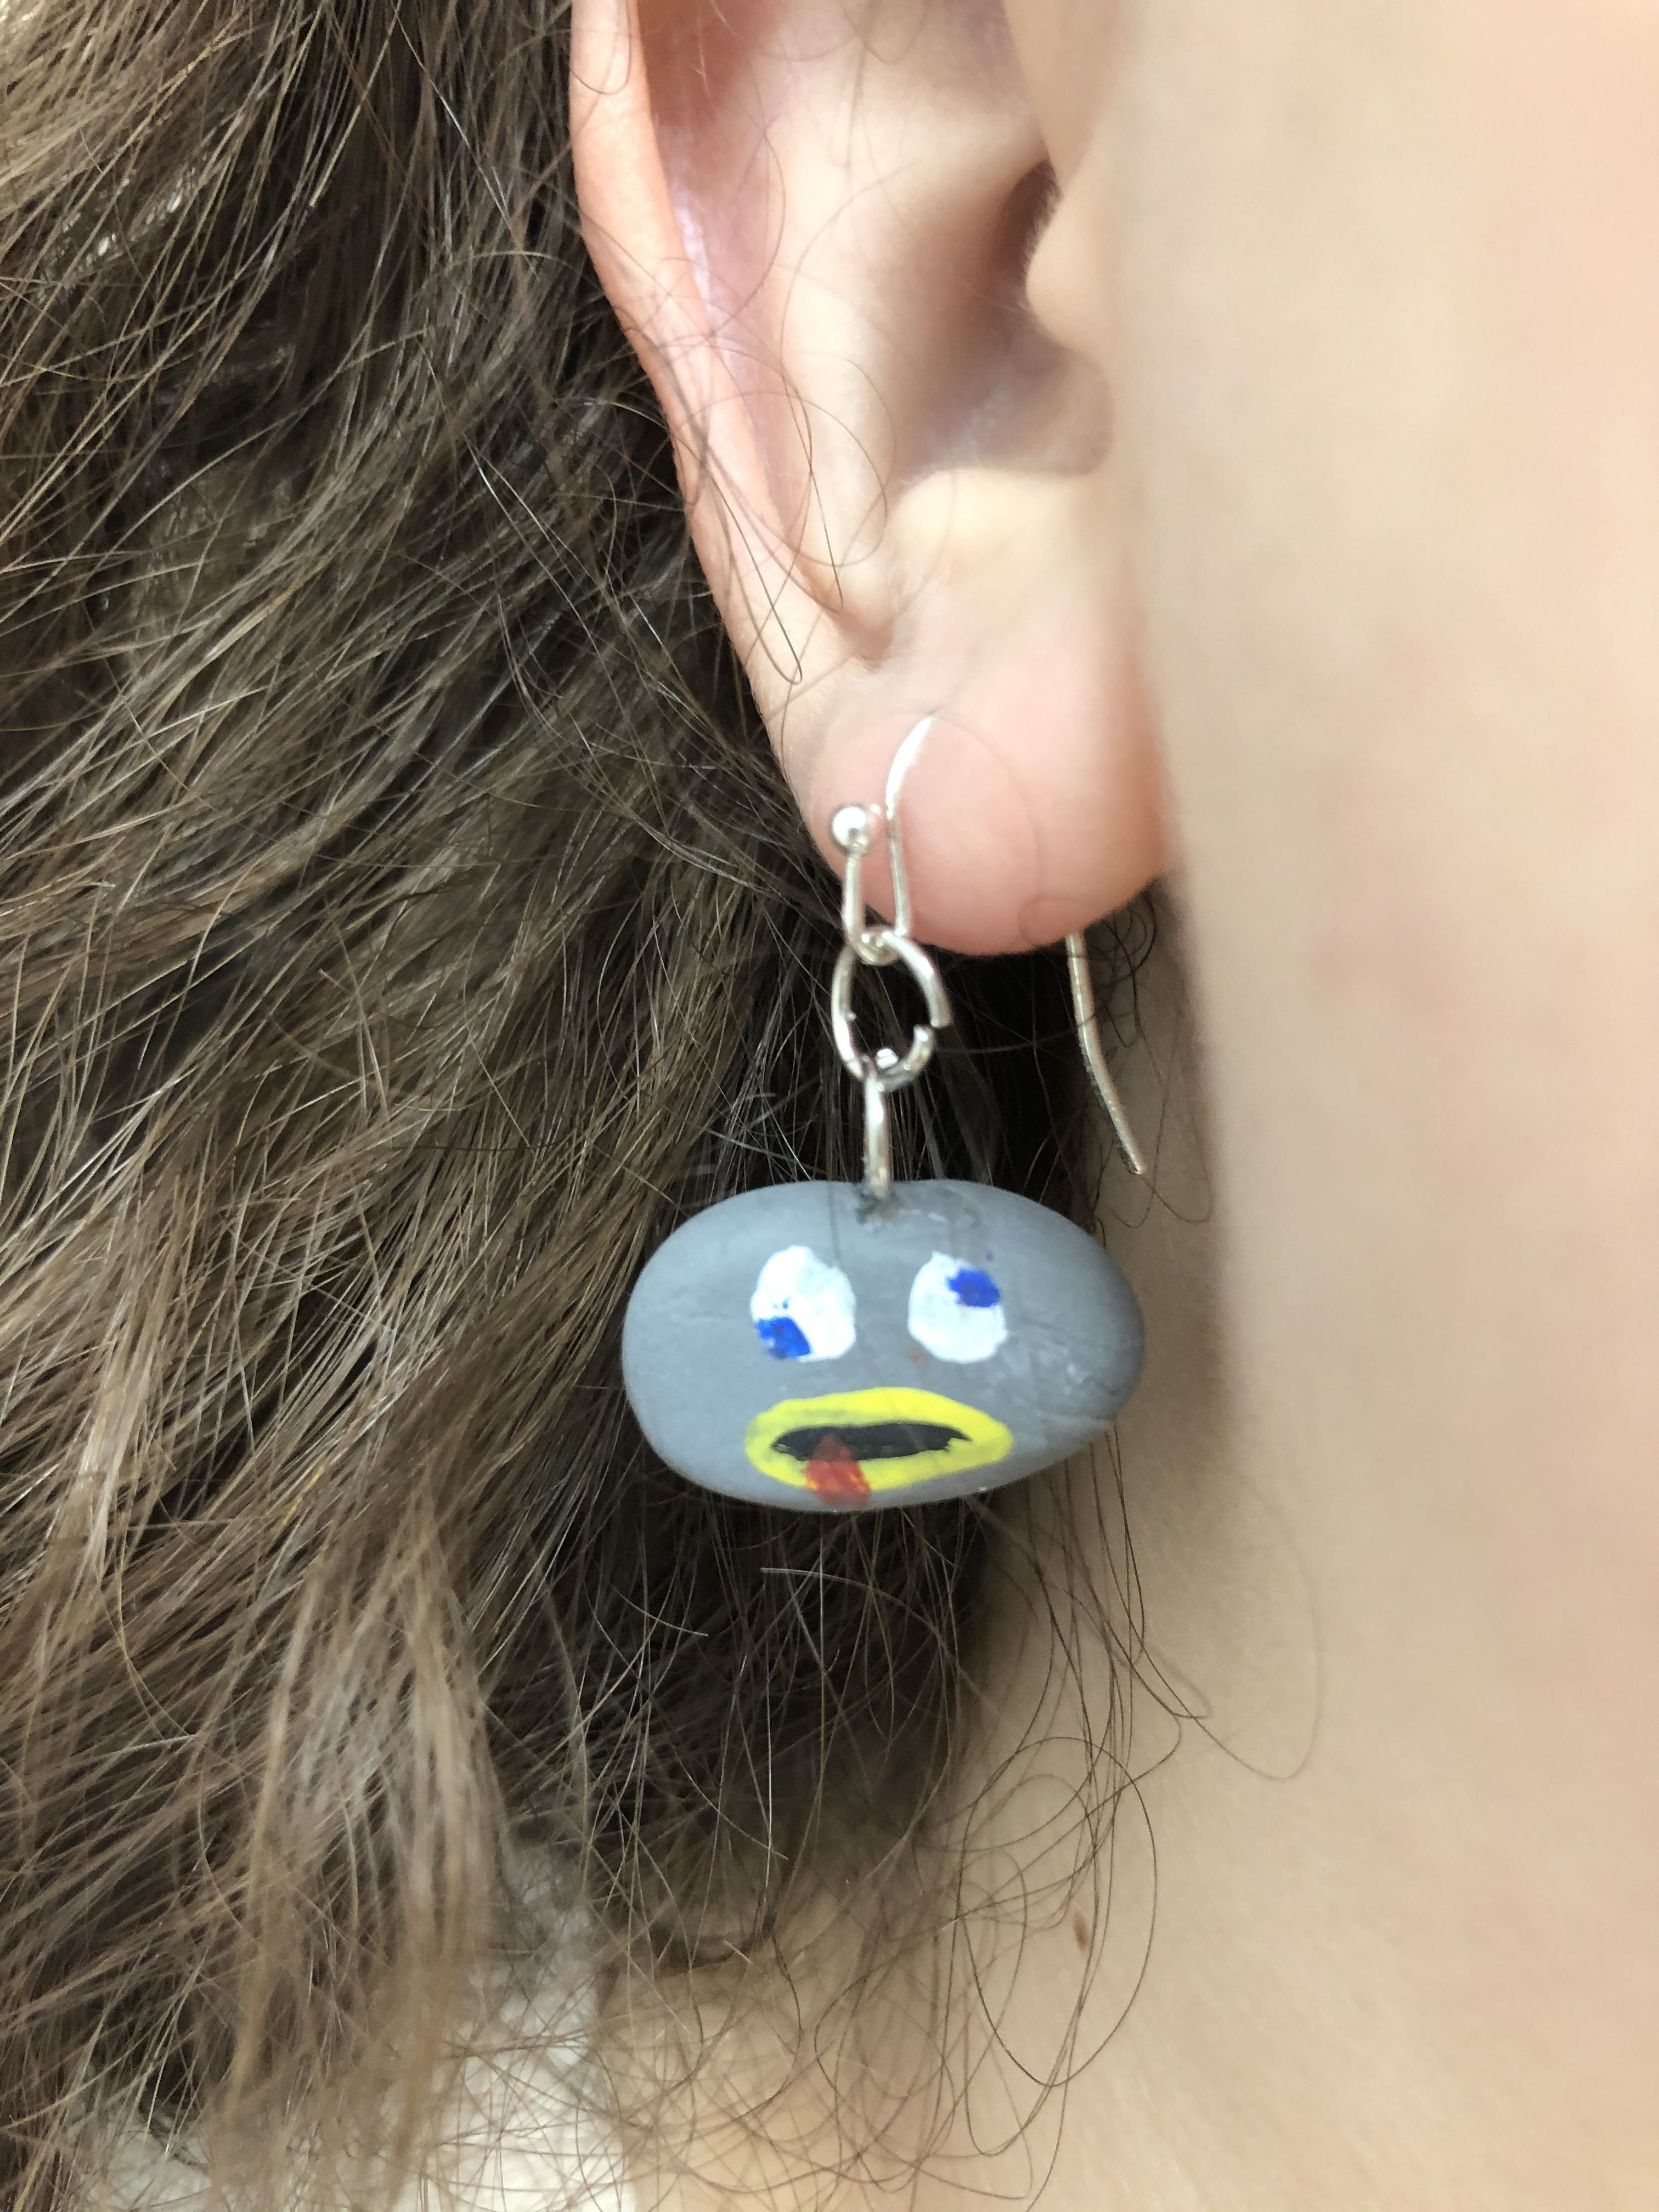 Over The Garden Wall Clay Drop Earrings Etsy In 2020 Etsy Earrings Earrings Drop Earrings